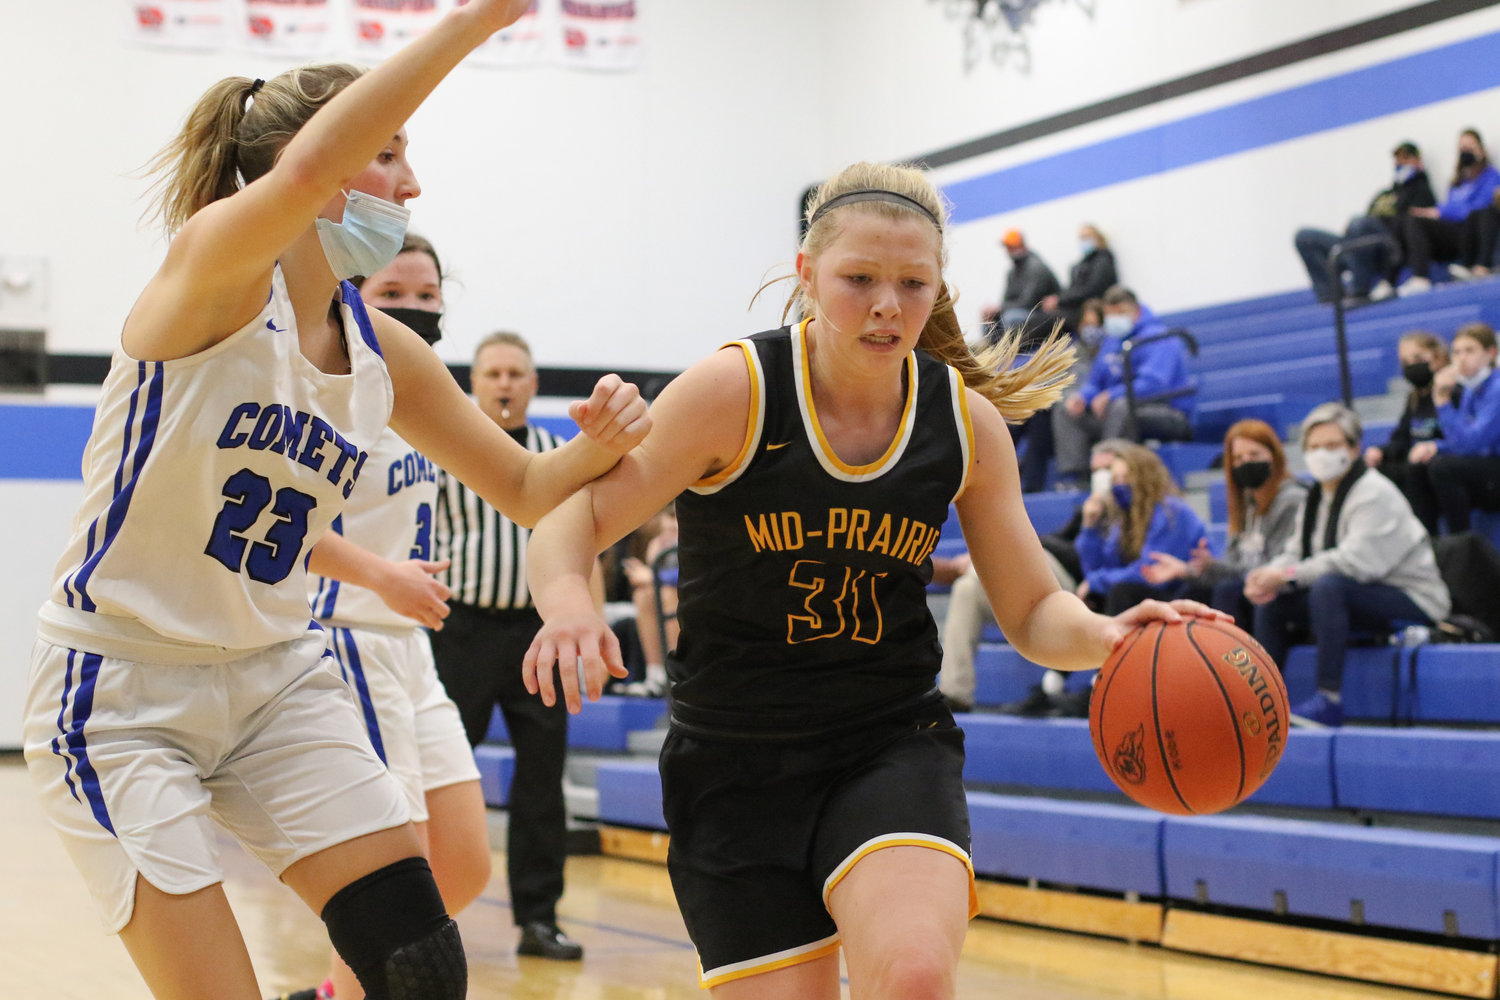 Best offensive game: Myah Lugar at Tipton. Lugar needed just nine shot attempts to put up 24 points as the Golden Hawks bounced back from their first loss of the season with a 58-30 win at Tipton on December 4.